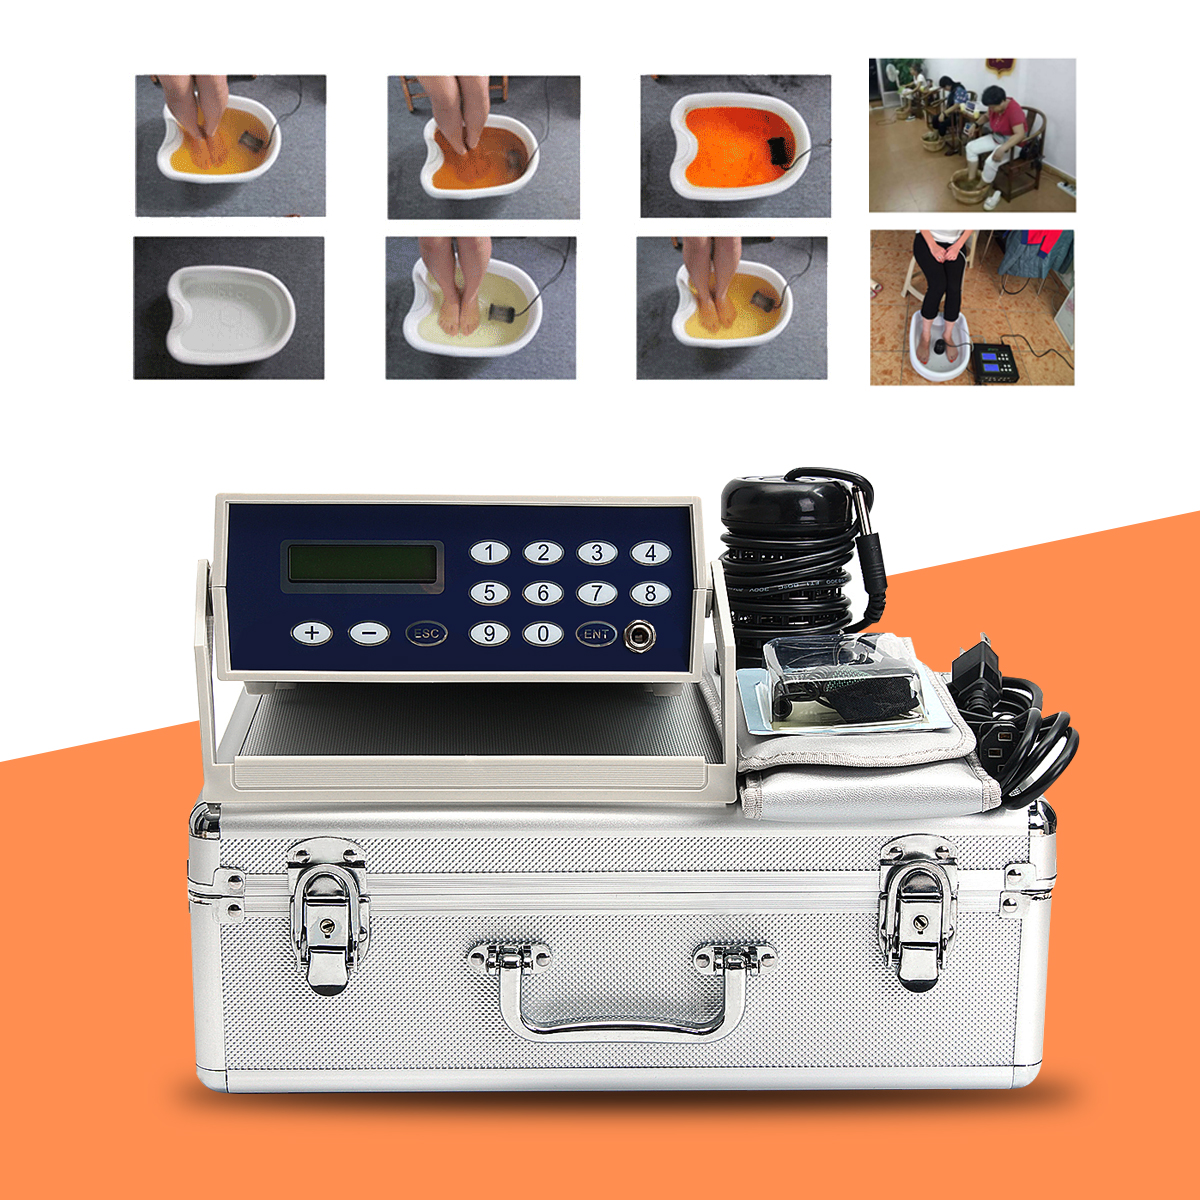 Detox foot care Machine Cell Ion Ionic Aqua Foot Bath SPA Cleanse Machine Fir Belt Box CAN foot bath massage pain relief machine ah 62c detox foot spa dual person foot spa massager machine ion cleanse foot spa device ionic detox foot spa fir belt